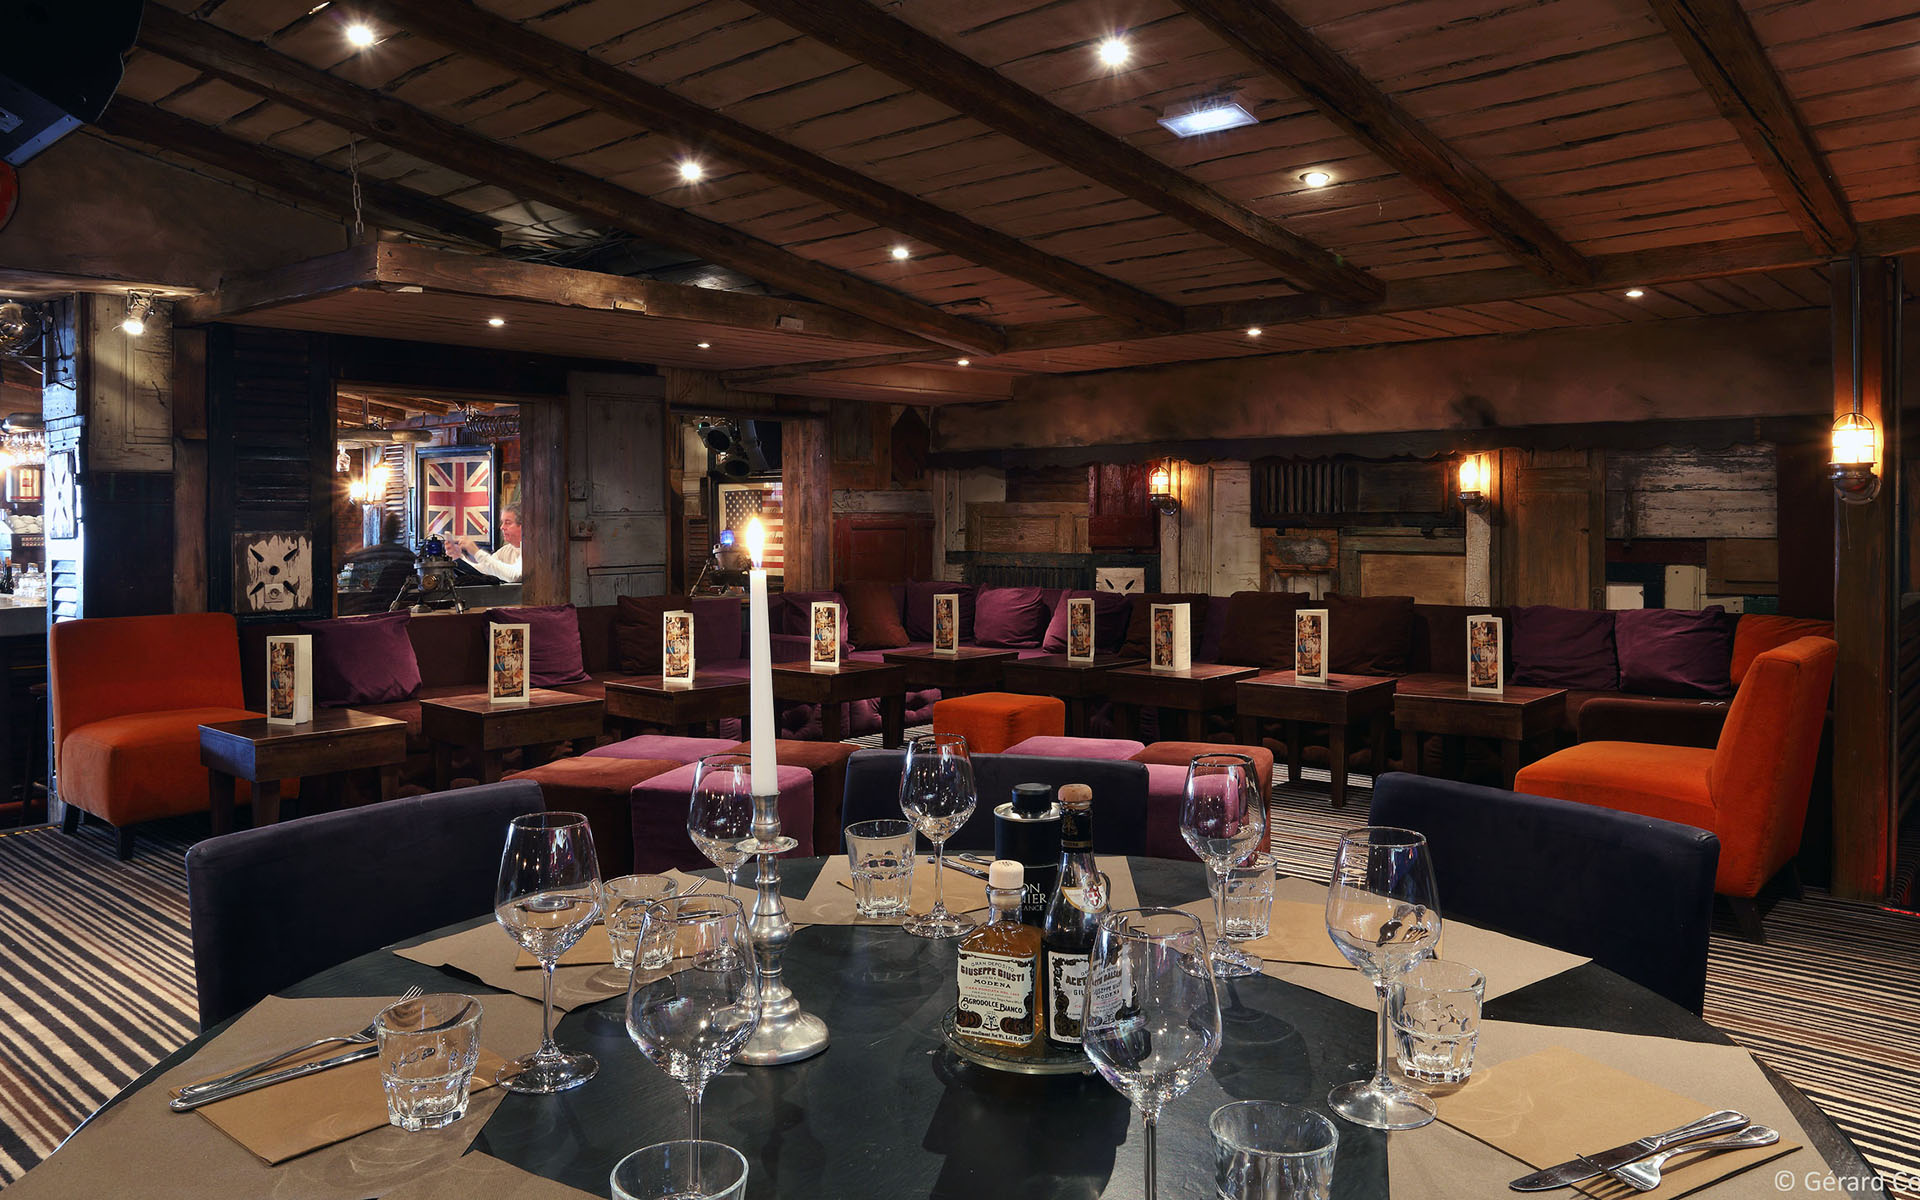 302/Site Maison Tournier/Restaurant/Chez Gaston/chez_gaston_courchevel_restaurant_13.jpg